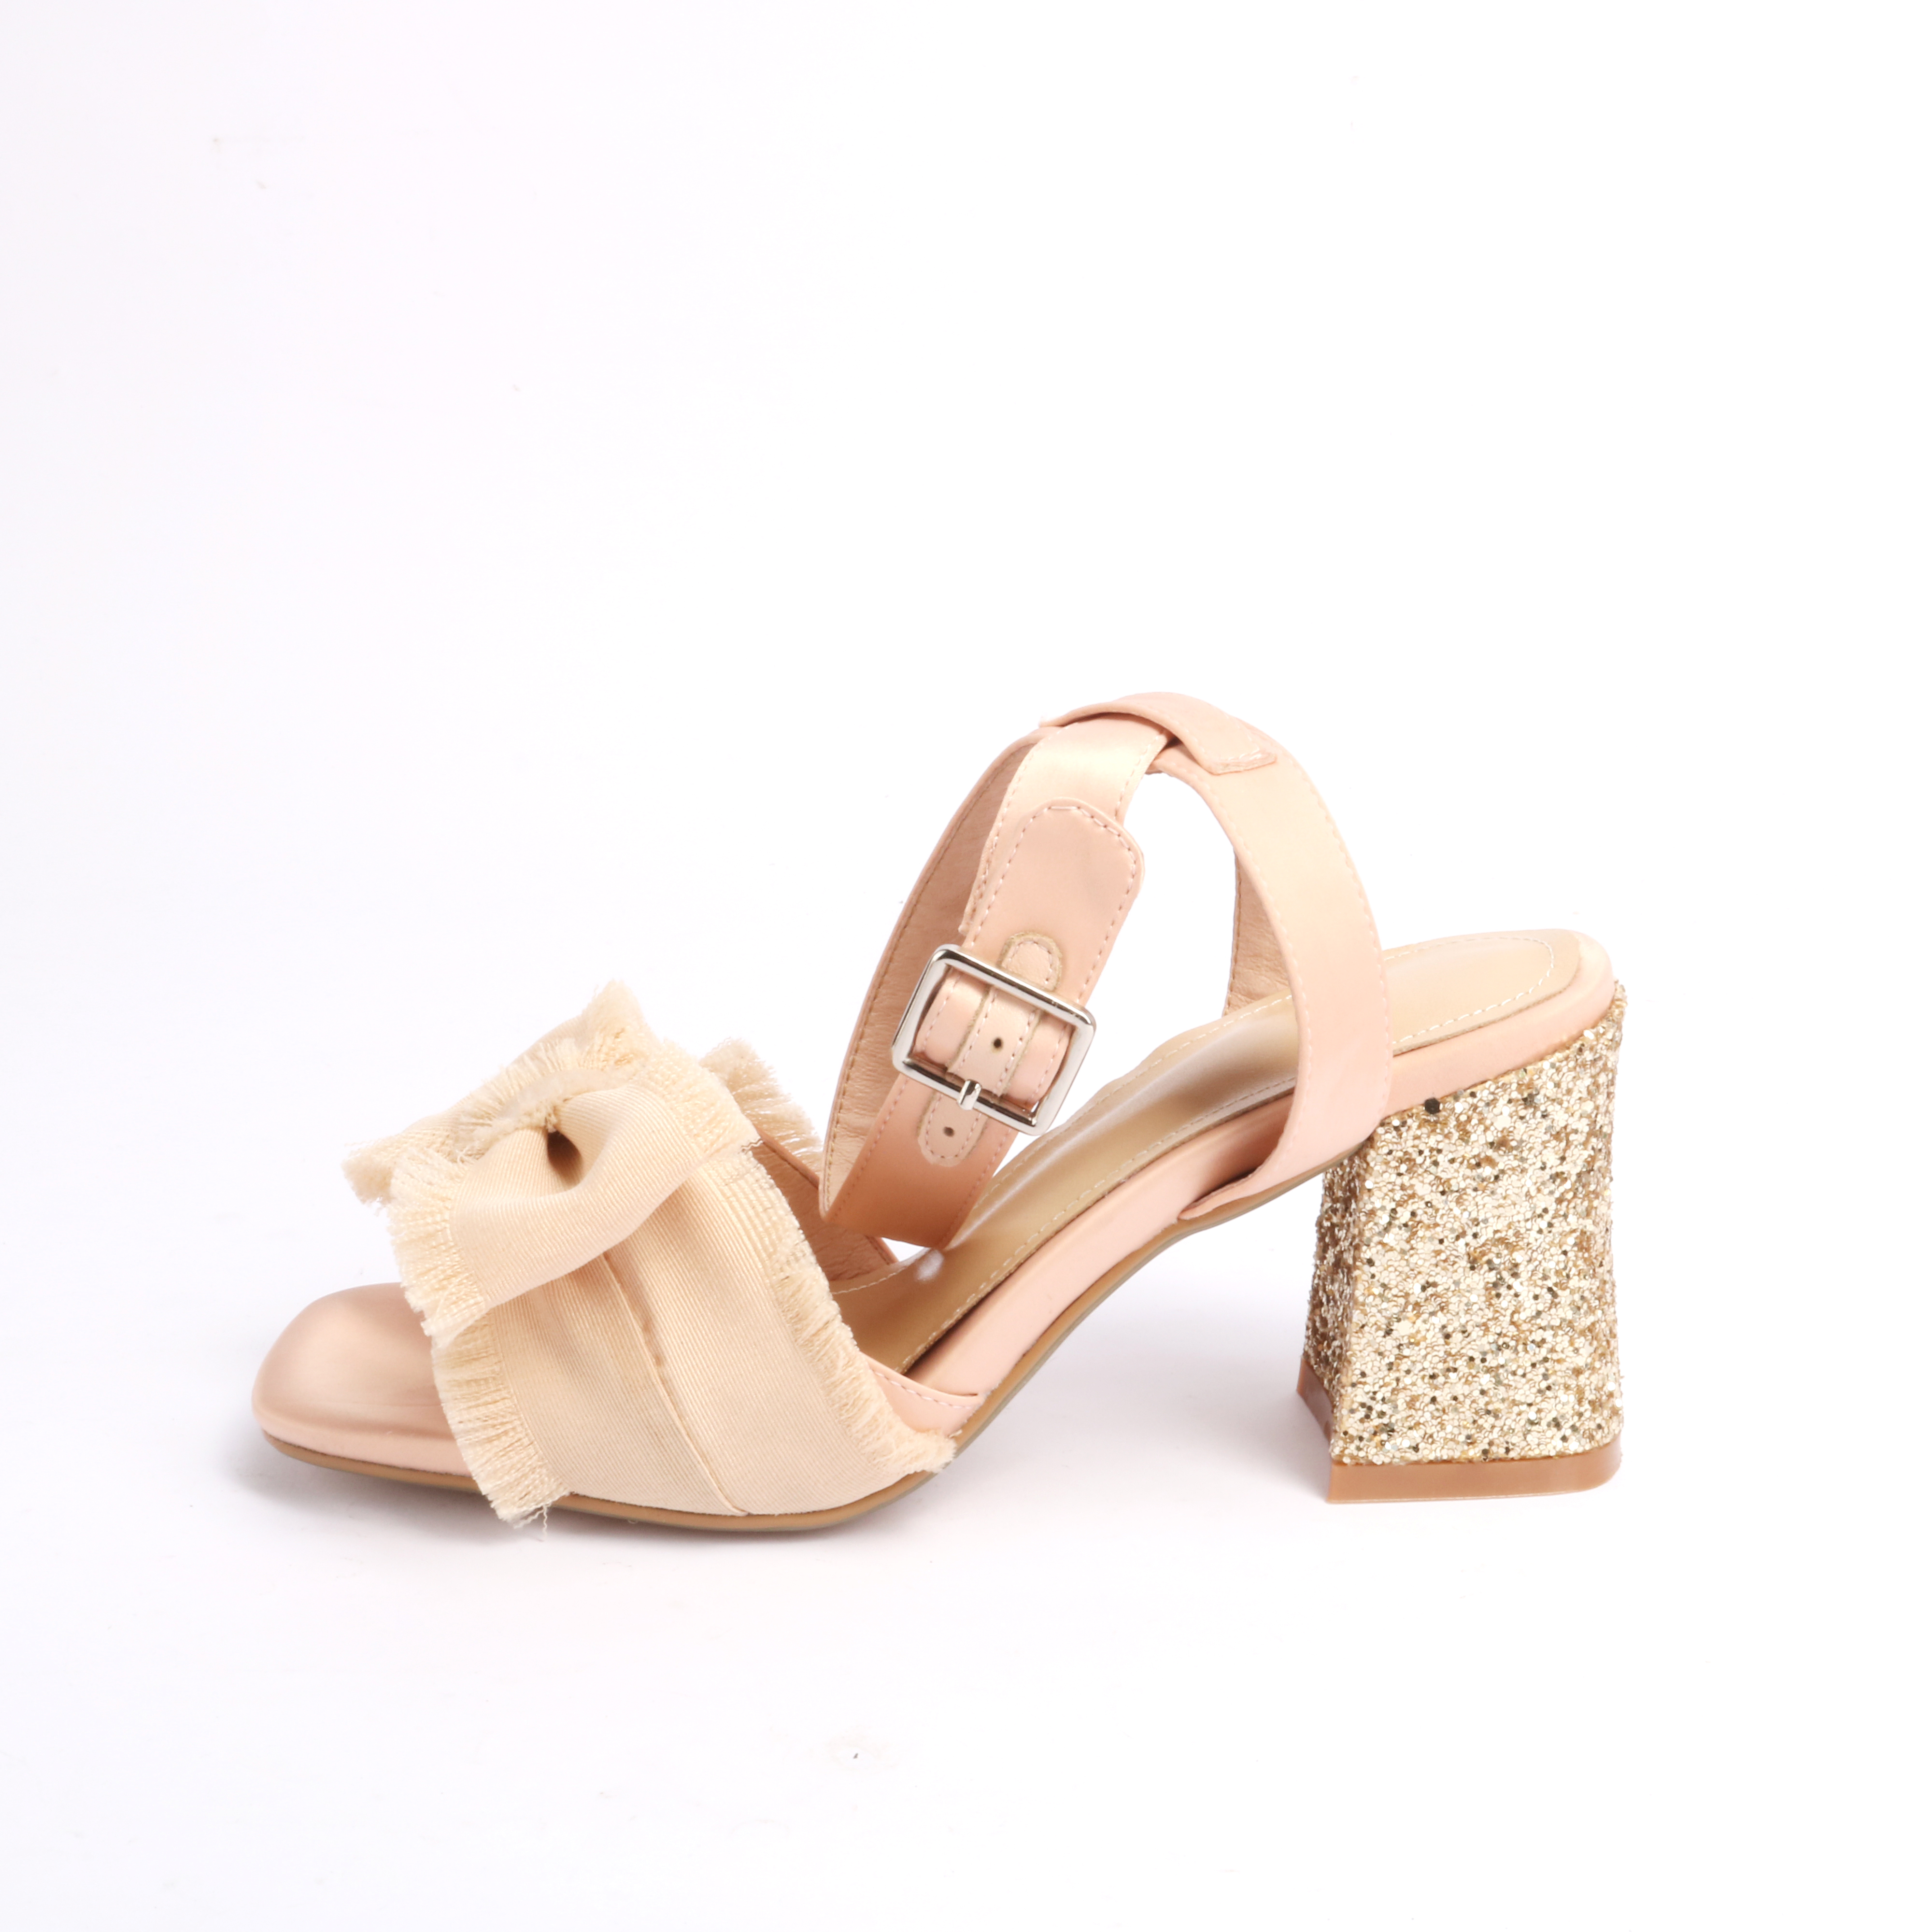 0602d78916482 US  46 - Arden Furtado 2018 summer high heels bling bling chunky heels  butterfly knot square heels fashion sandals shoes for woman ladies ...